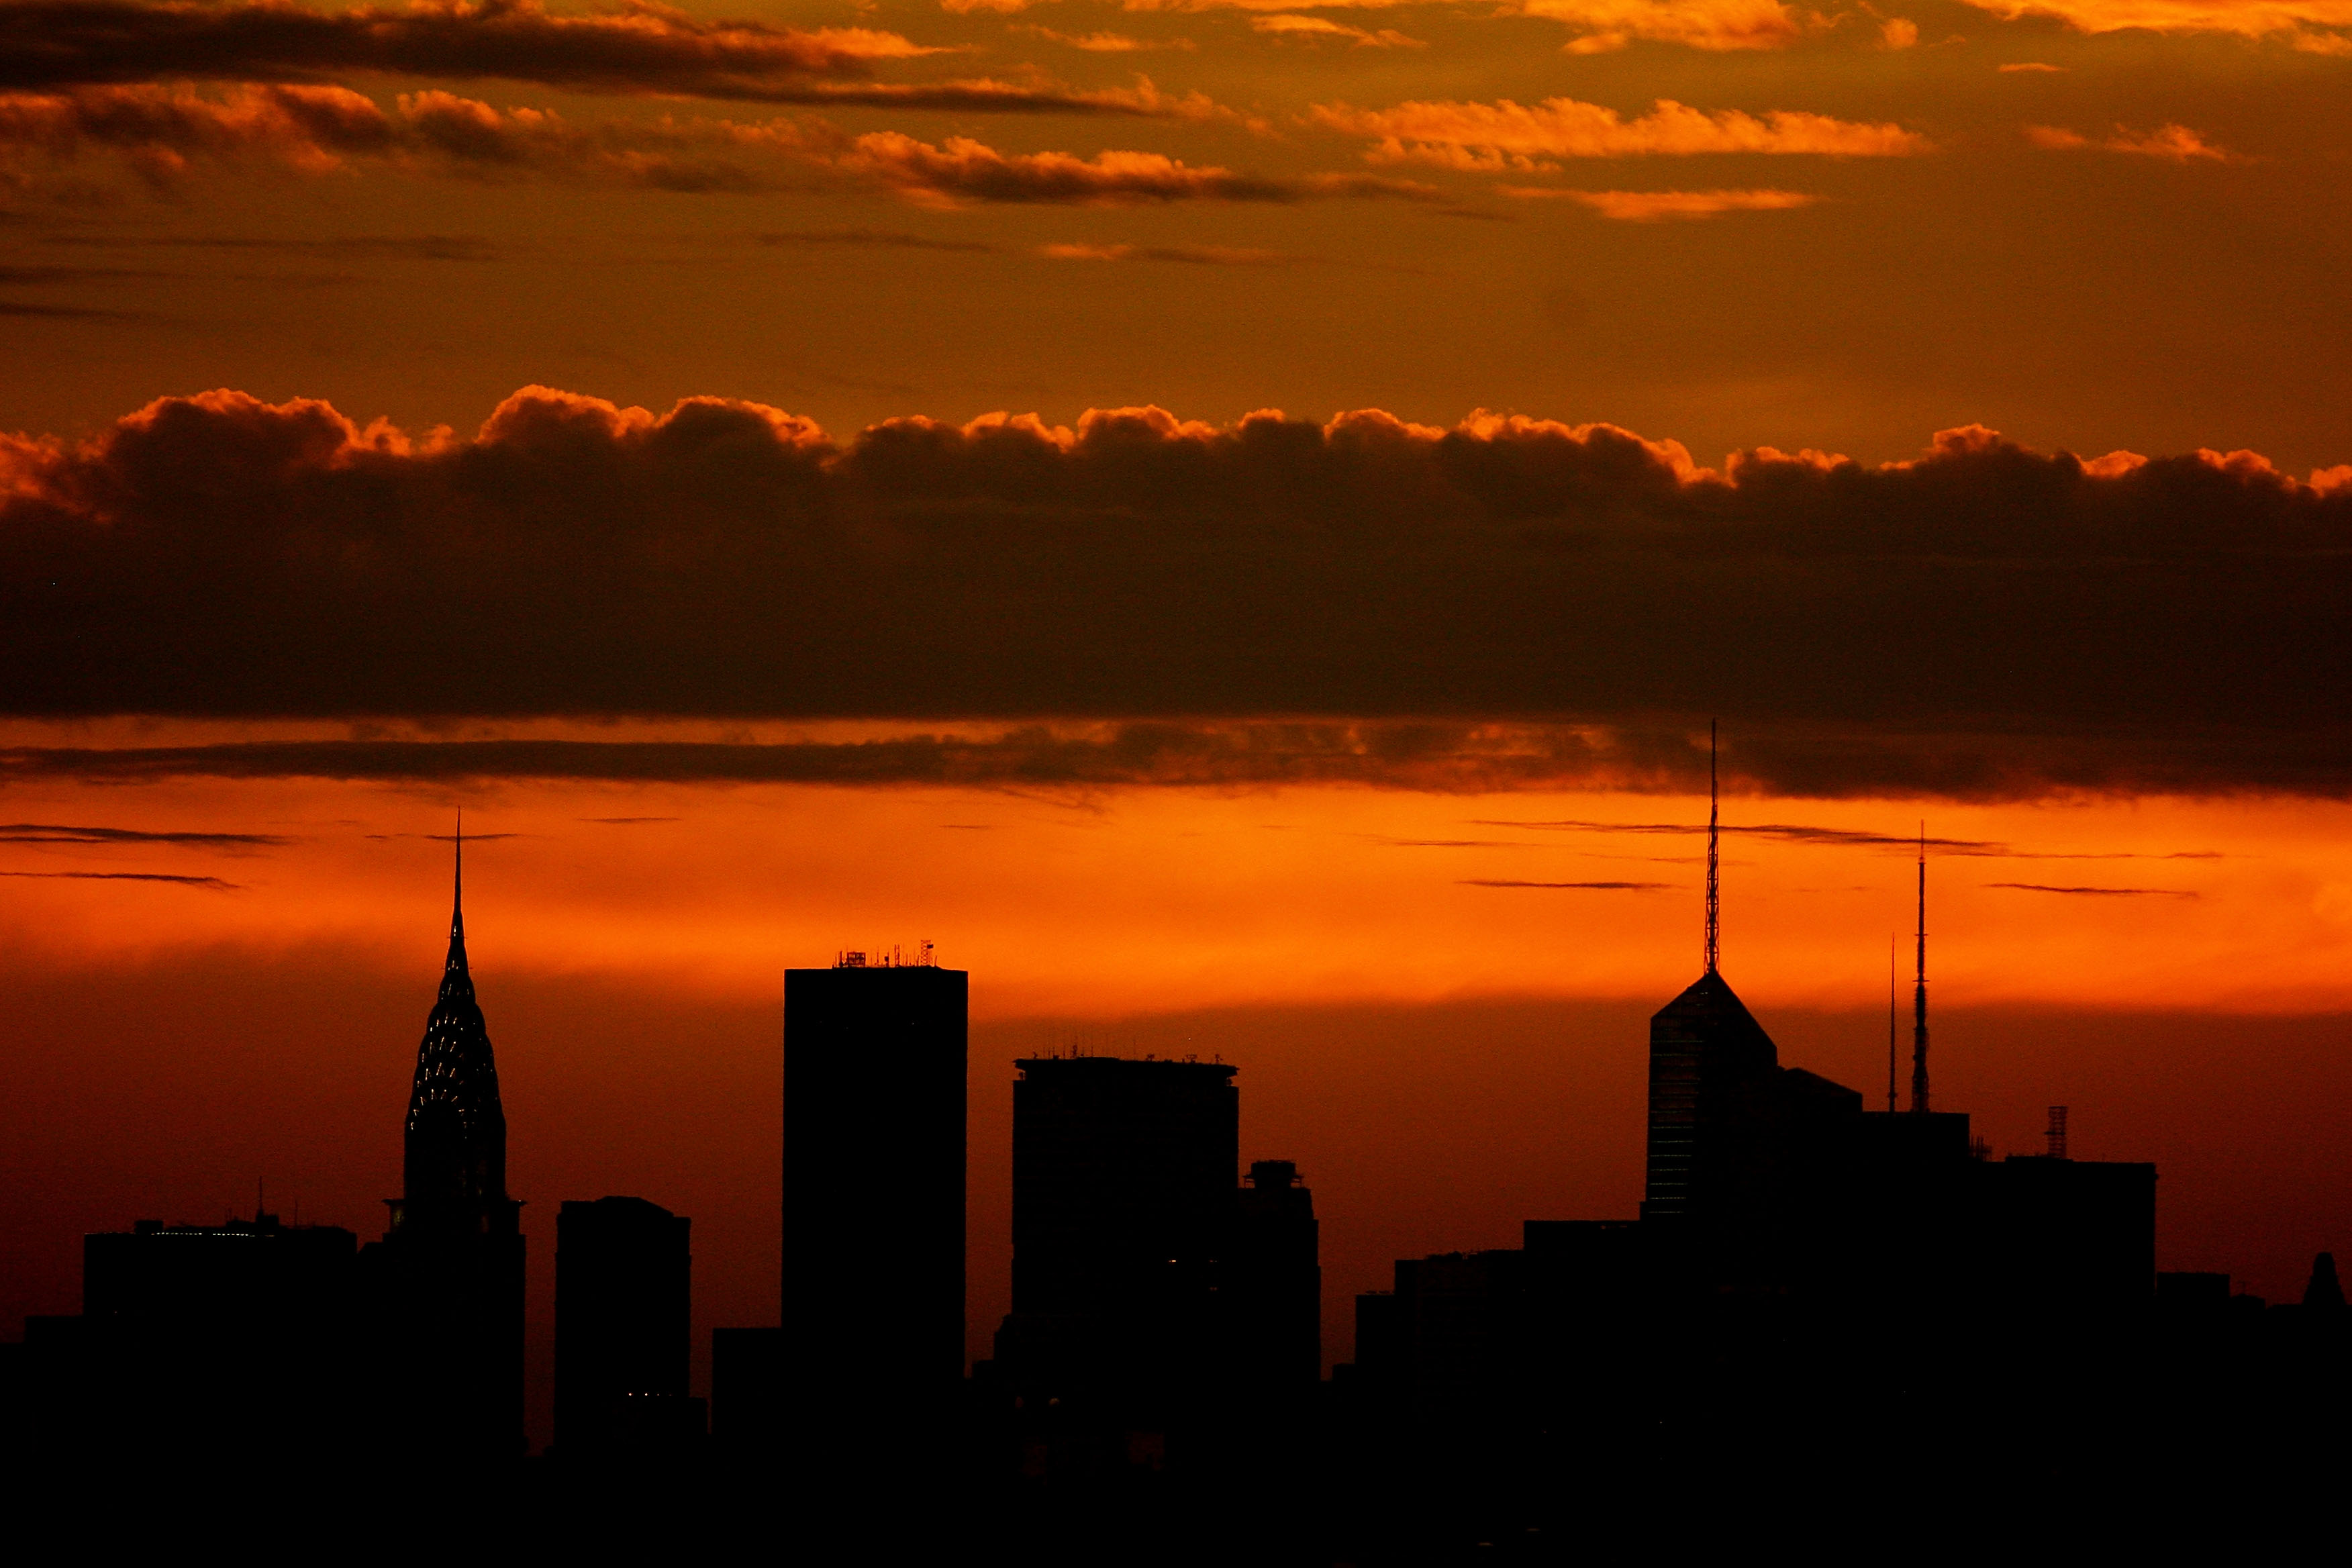 NEW YORK - SEPTEMBER 03:  The sun sets over the New York skyline during day five of the 2010 U.S. Open at the USTA Billie Jean King National Tennis Center on September 3, 2010 in the Flushing neighborhood of the Queens borough of New York City.  (Photo by